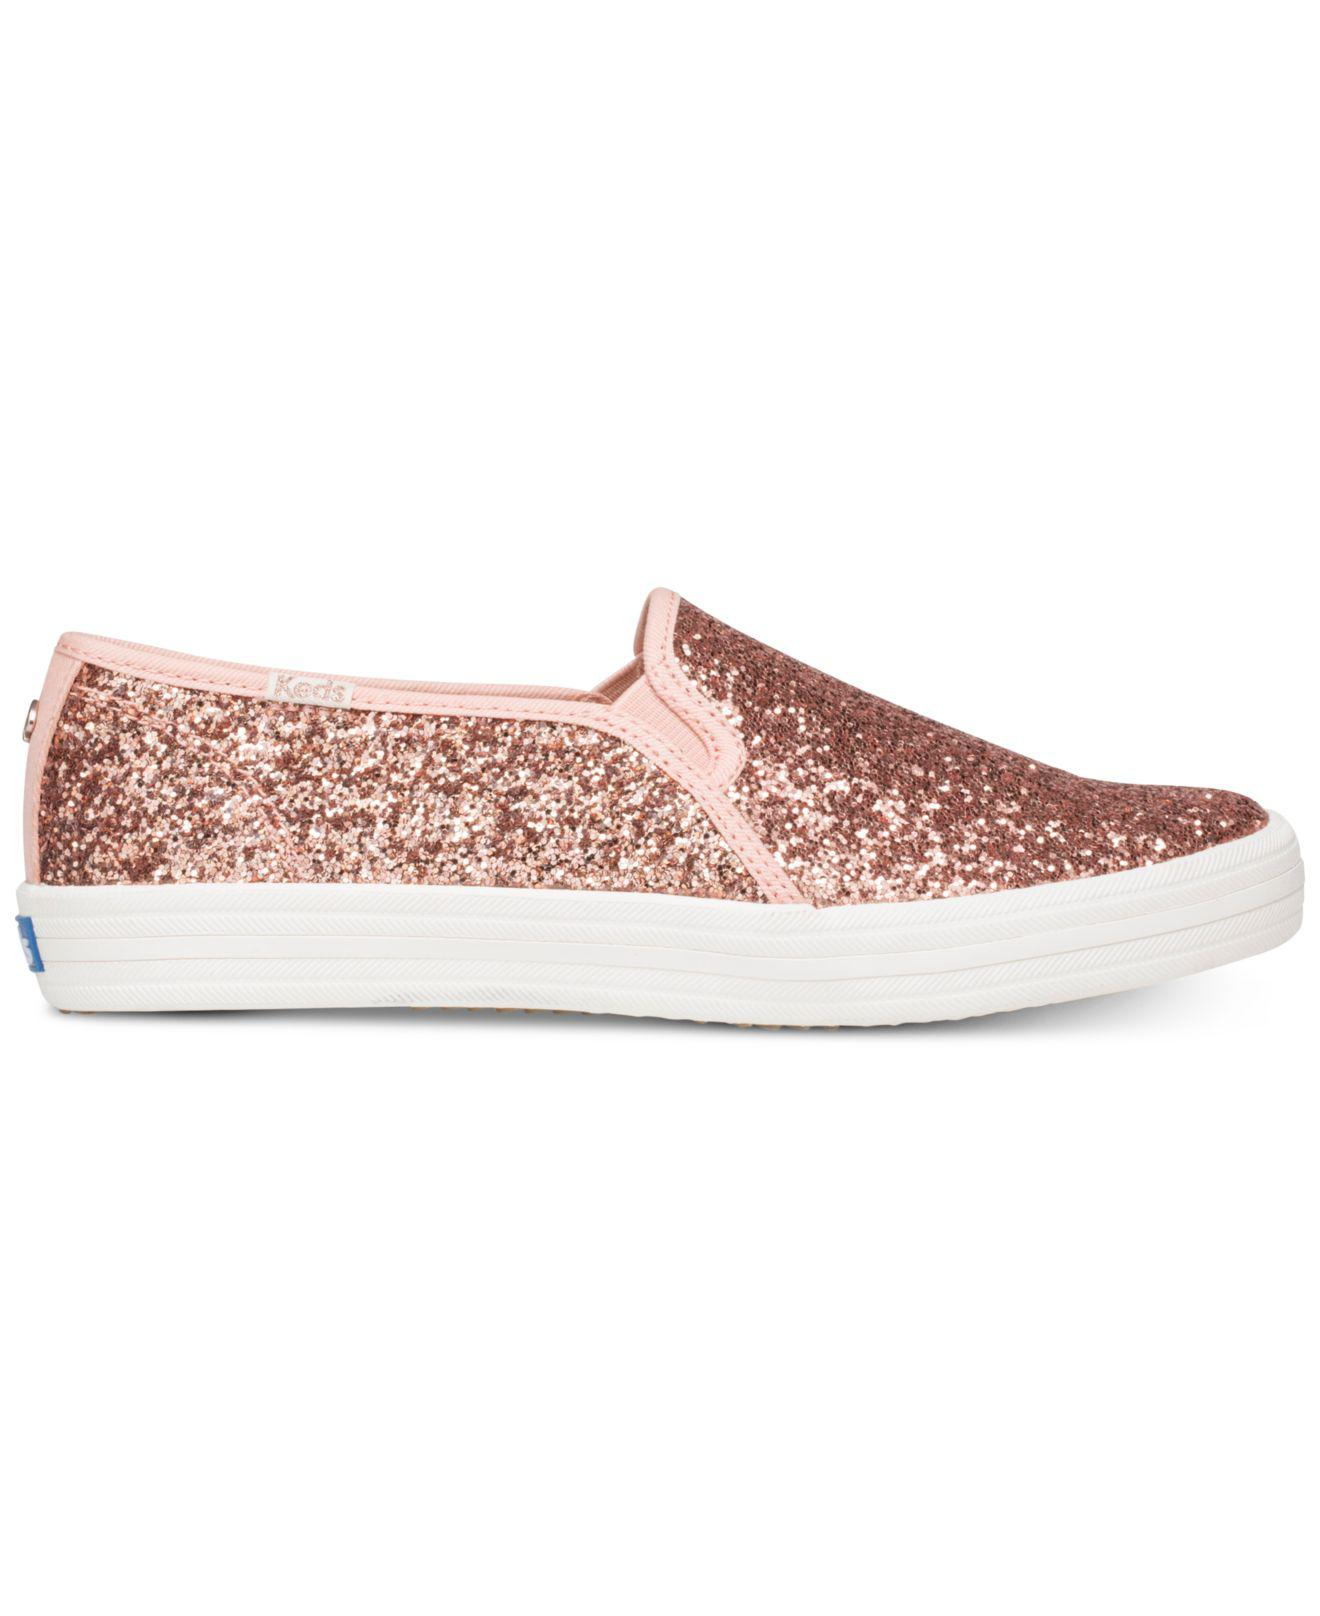 62711a8c5065 Kate Spade Keds For Double Decker Glitter Sneakers in Pink - Lyst